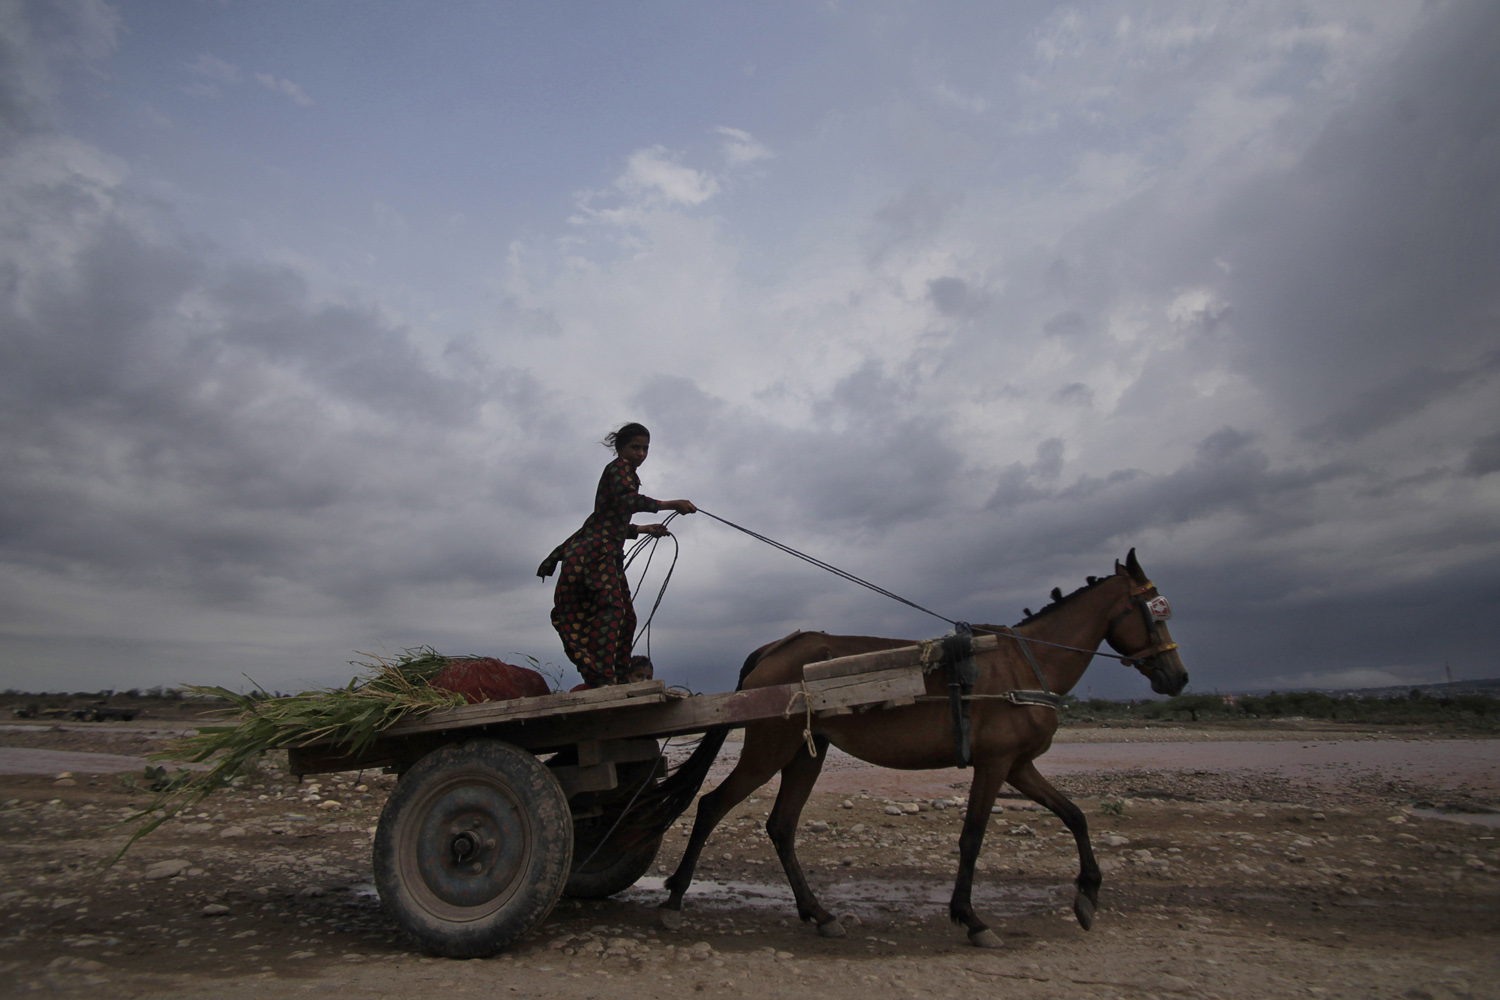 Jul. 17, 2014. An Indian girl rides a horse cart as monsoon clouds hover in Jammu, India